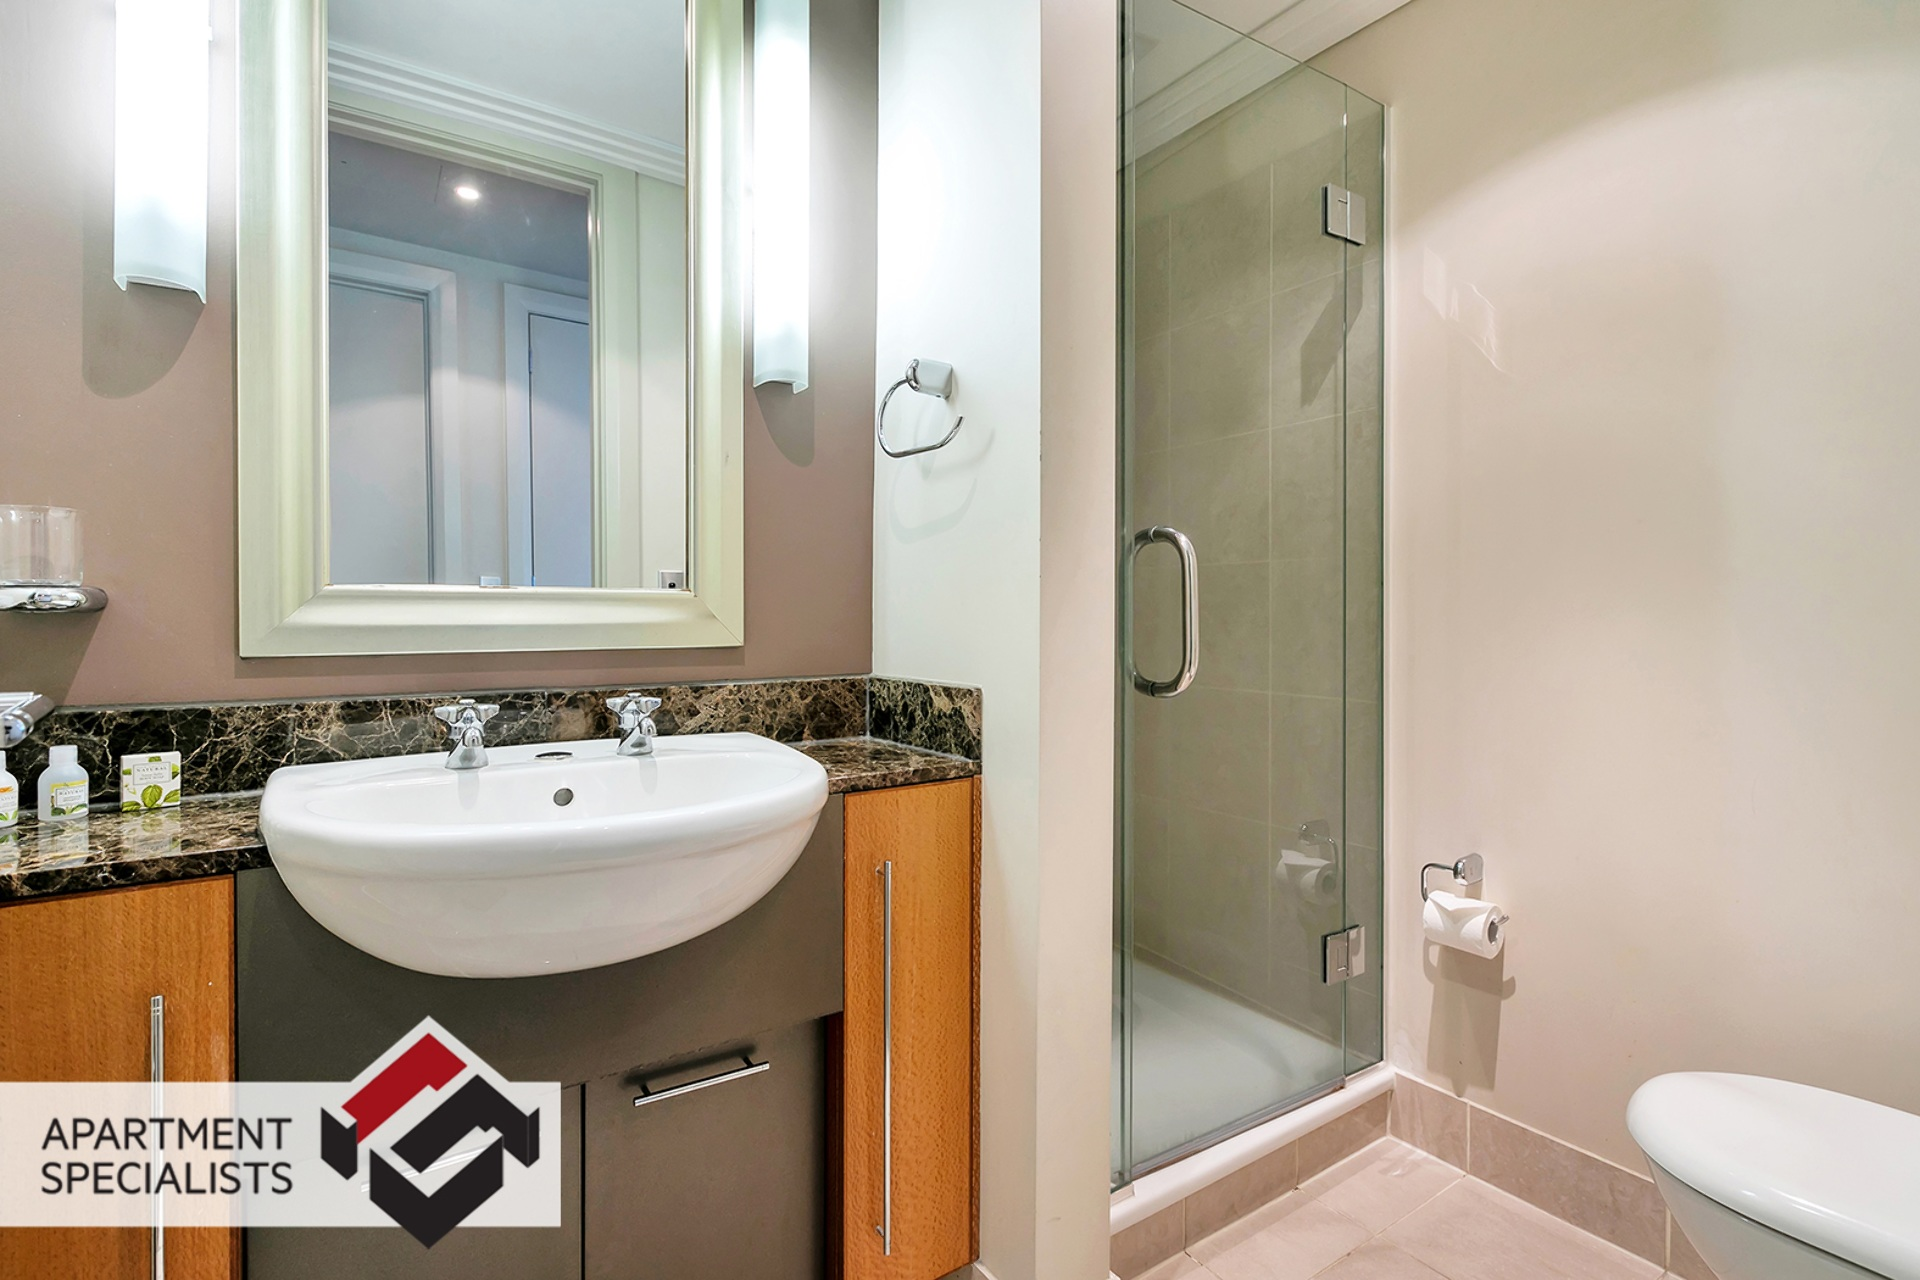 14 | 99 Customs Street West, City Centre | Apartment Specialists